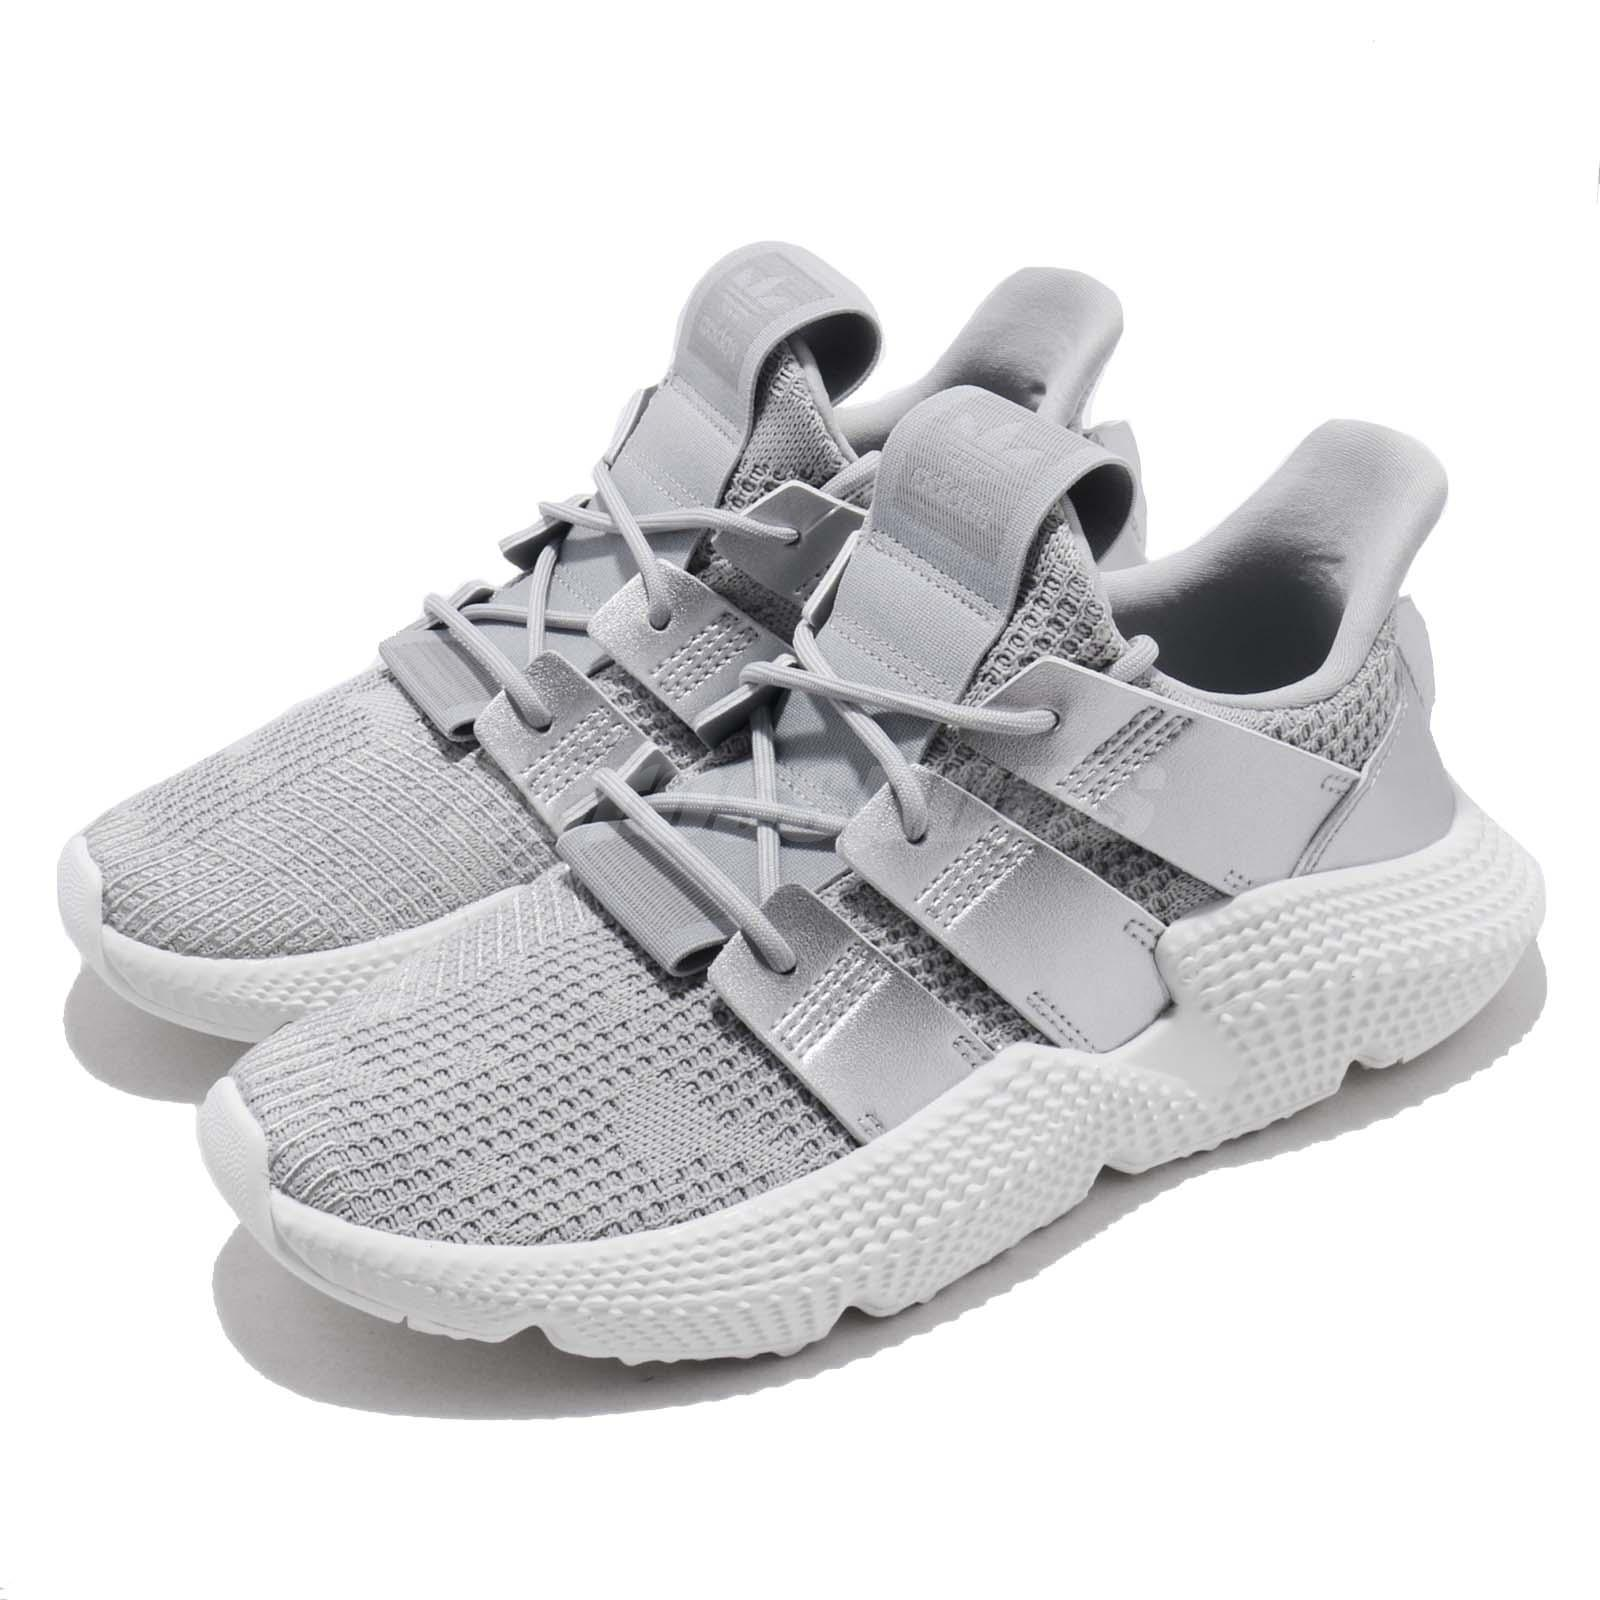 e93e666a311 Details about adidas Originals Prophere W Grey Silver White Women Running  Shoes Sneaker CG6069